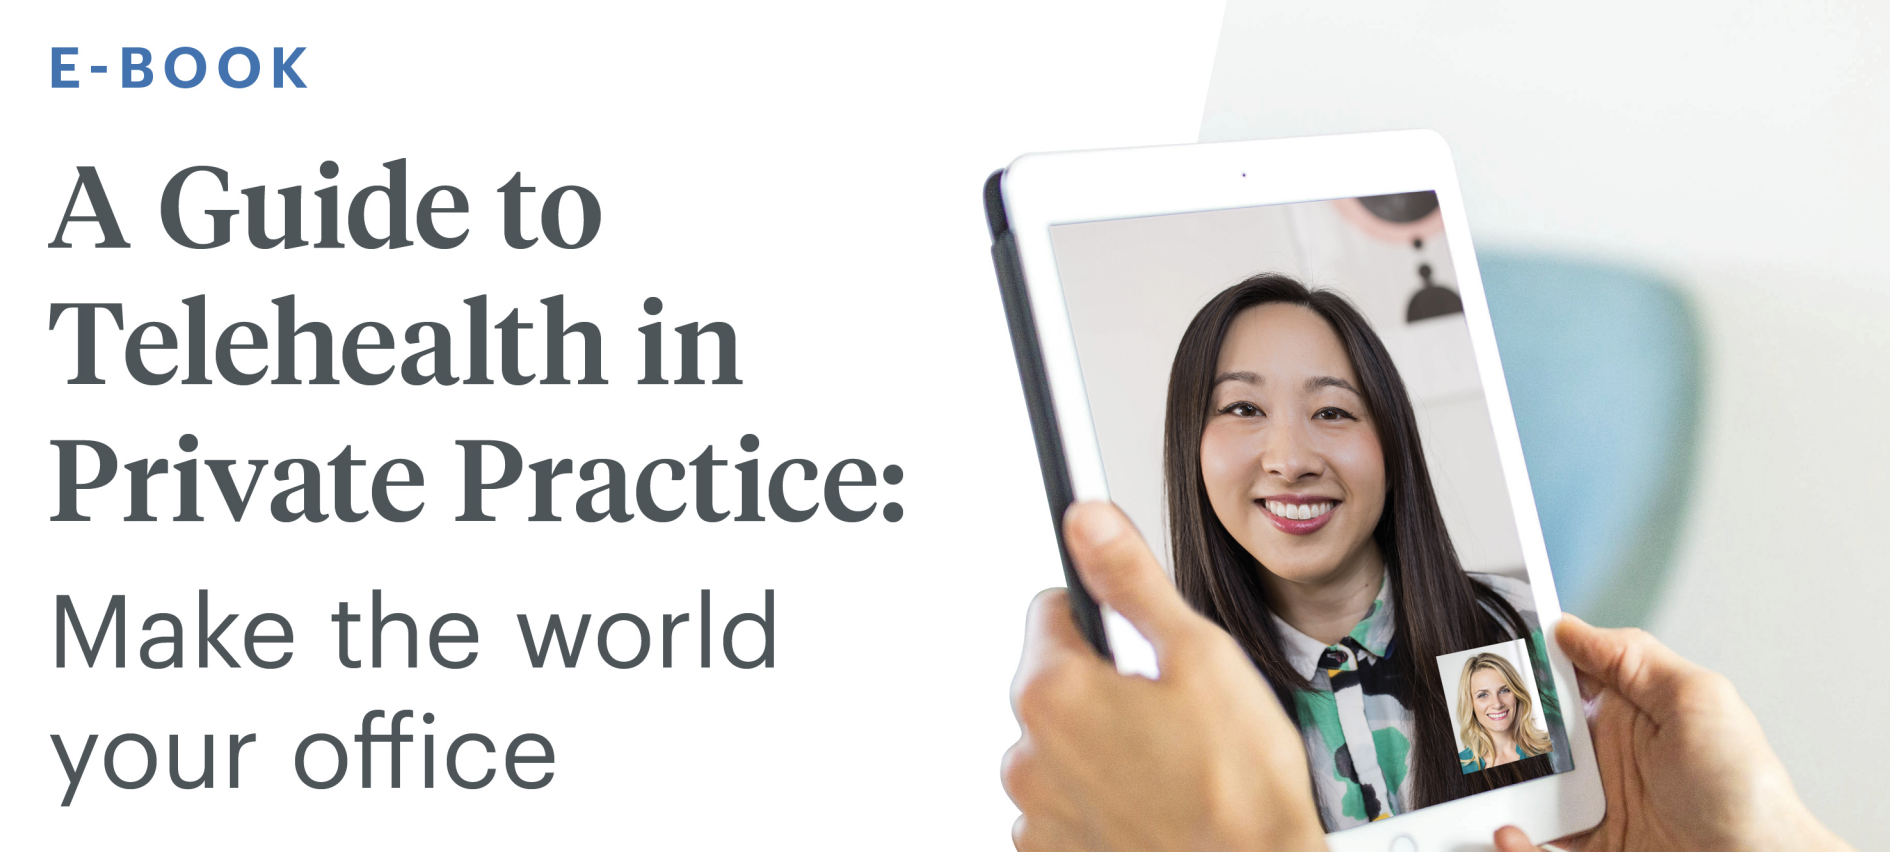 eBook: A Guide to Telehealth in Private Practice